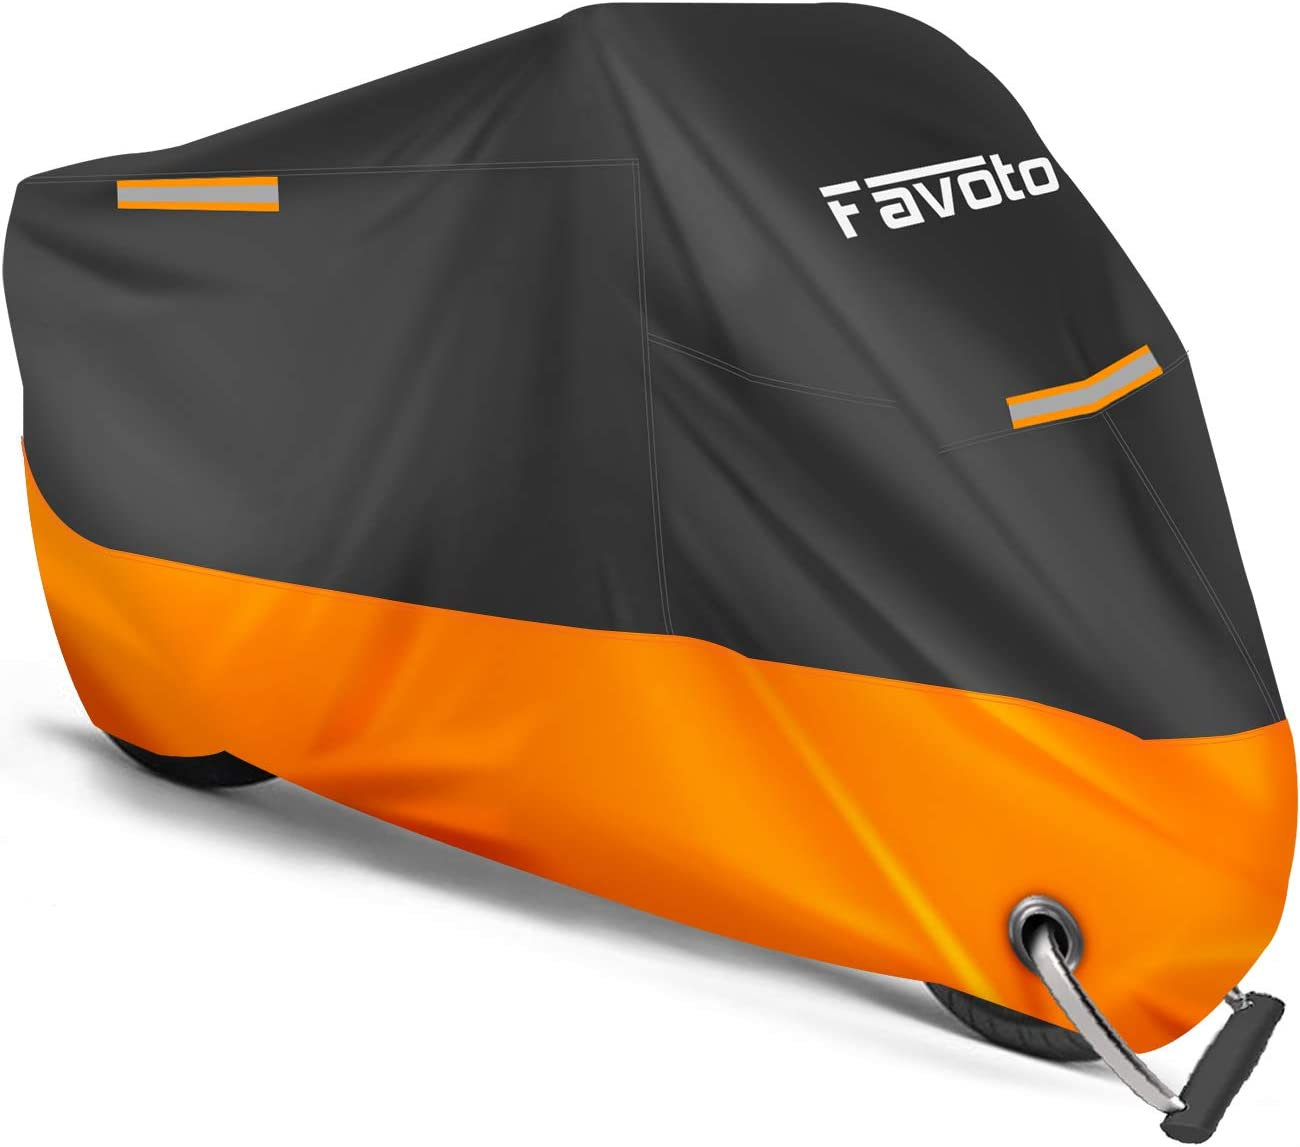 XXL,Black QSTT Waterproof Sun Motorcycle Cover Harley and More Suzuki All Season Outdoor Protection,Fits up to 104 Motors for Honda Yamaha